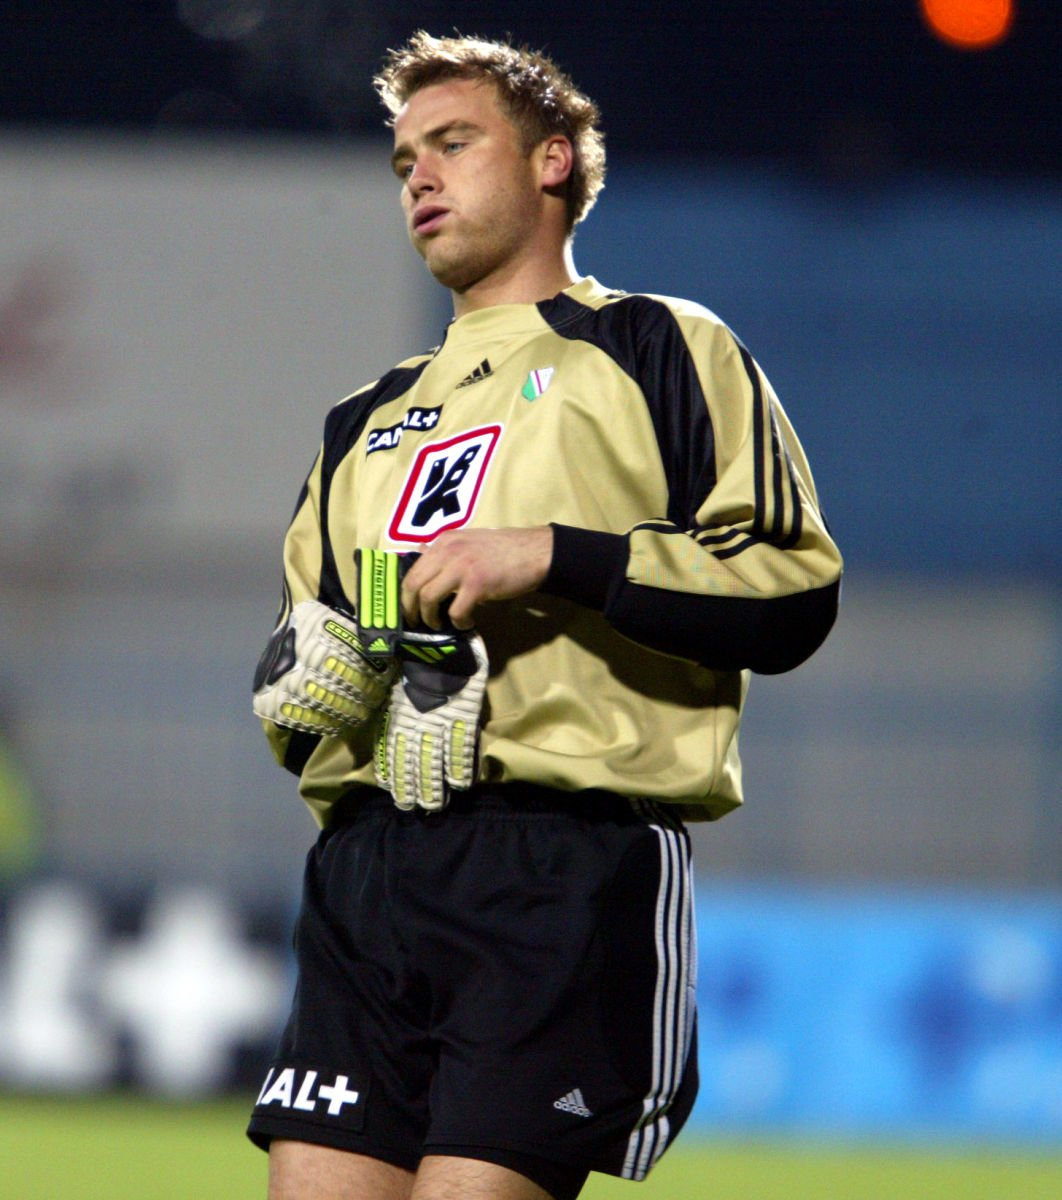 PILKA NOZNA WISLA PLOCK LEGIA WARSZAWA WYNIK 0:2 19/10/2002 DWA PAWEL BORUC FOT. PIOTR NOWAK --- Newspix.pl *** Local Caption *** www.newspix.pl mail us: info@newspix.pl call us: 0048 022 23 22 222 --- Polish Picture Agency by Axel Springer Poland